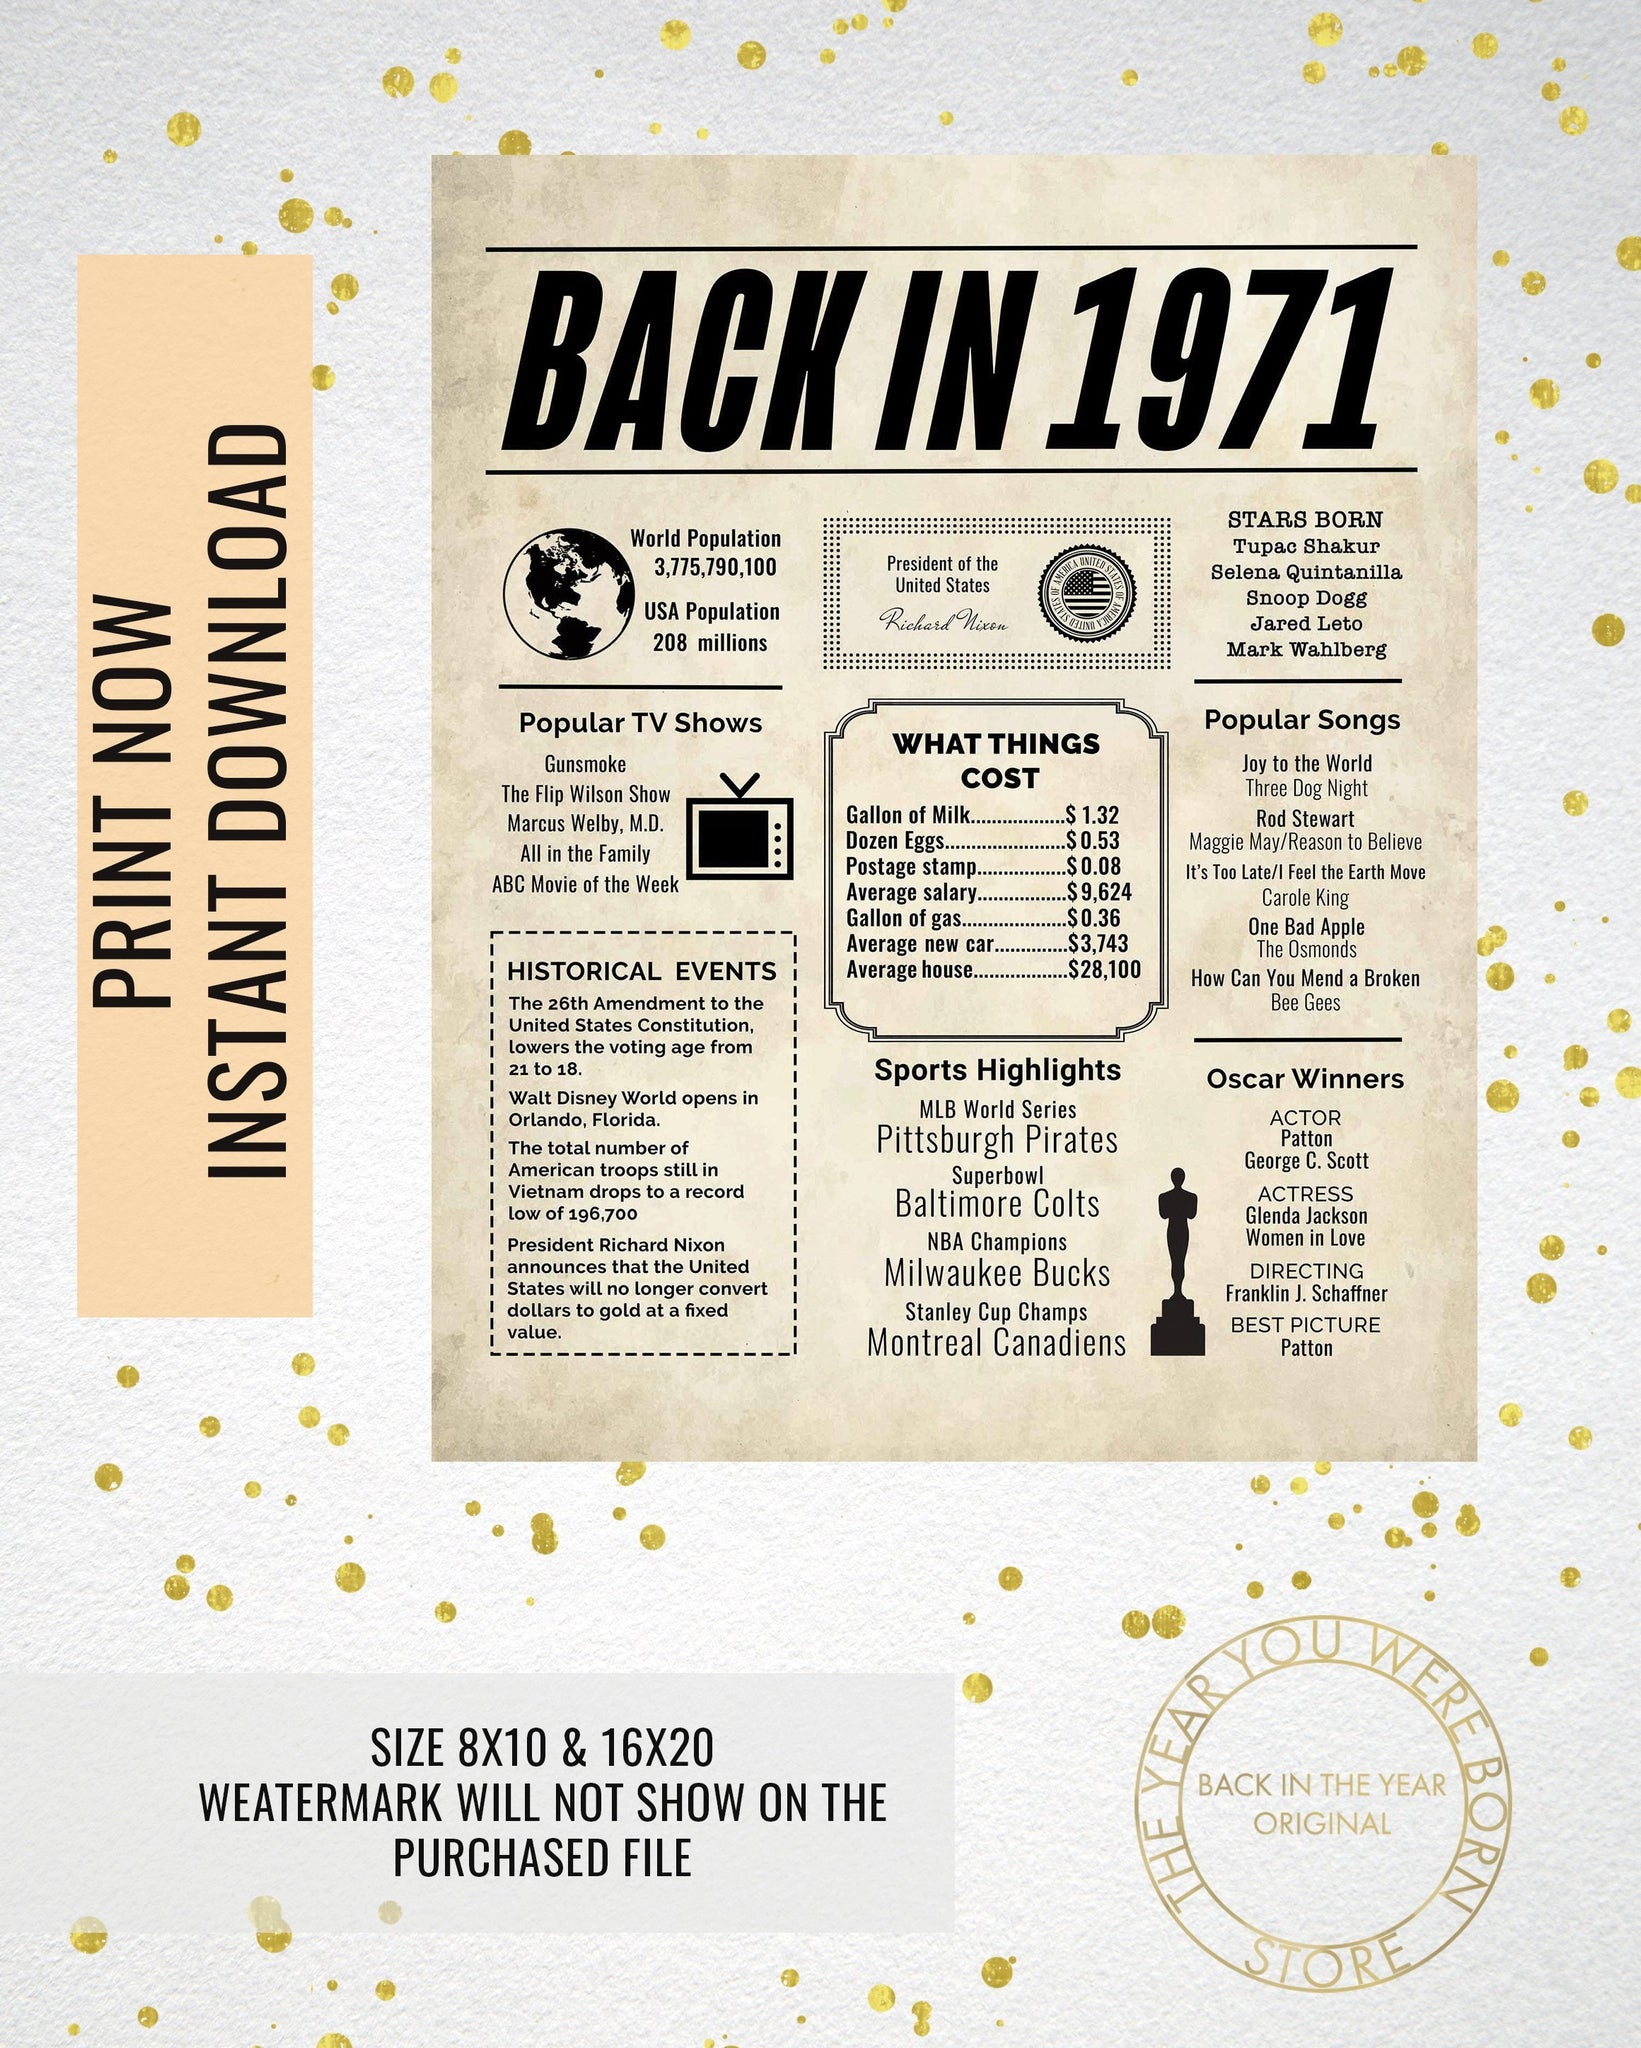 picture about Time Capsule Printable referred to as 1971 Newspaper Poster, Birthday Poster Printable, Year Capsule 1971, The Yr 1971 Fast Obtain, 1971 poster poster signal